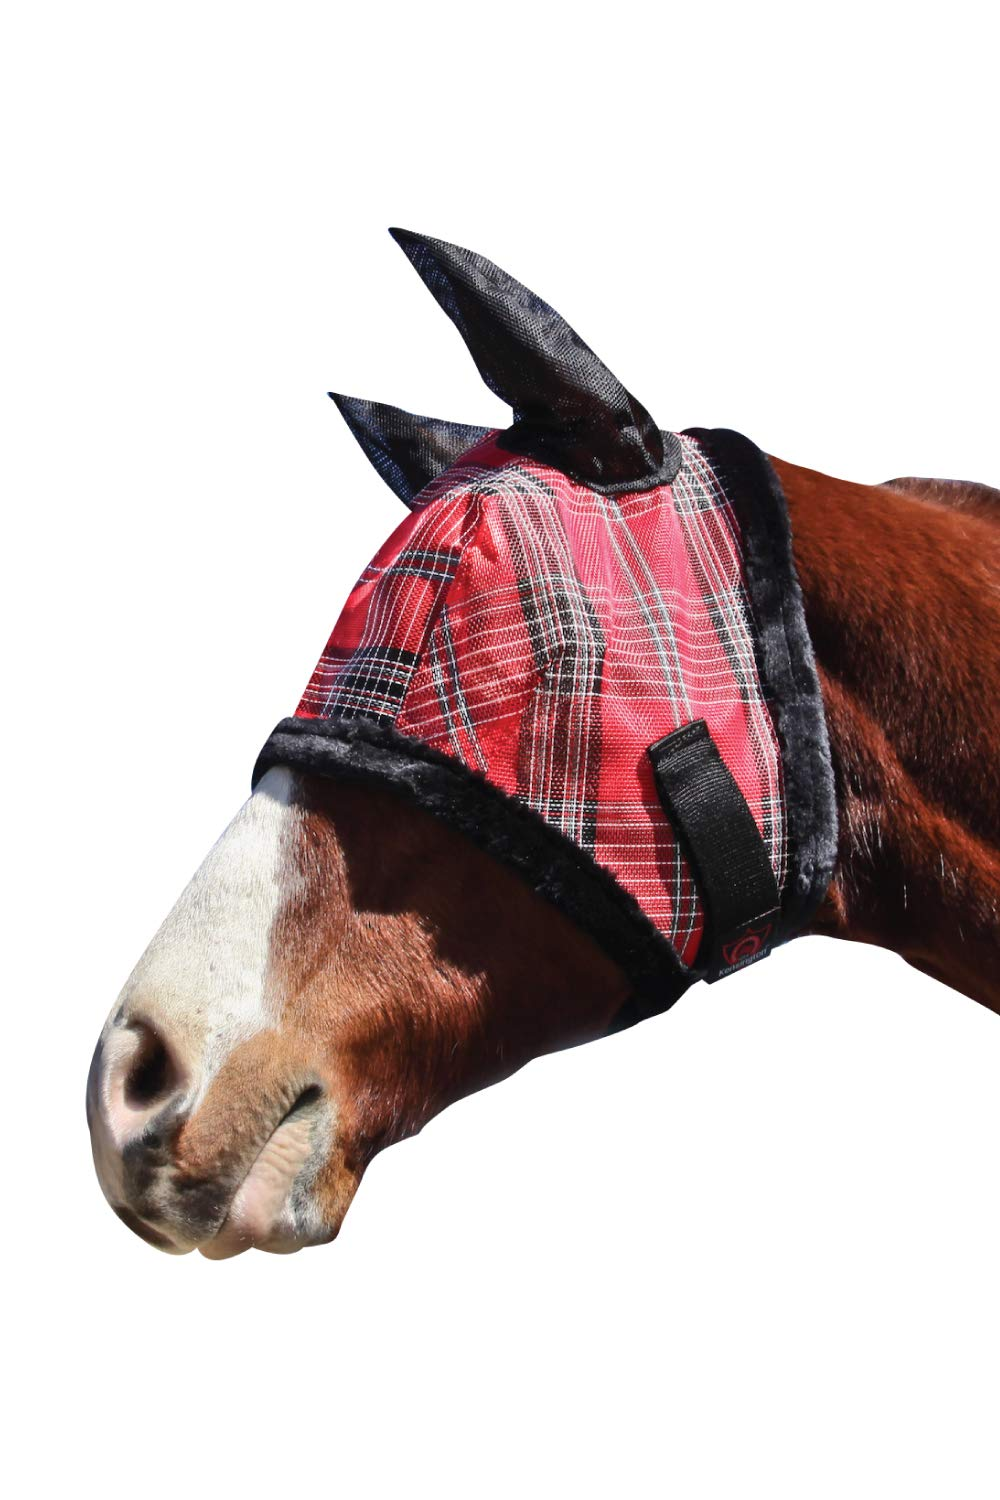 Kensington Fly Mask with Fleece Trim and Soft Ears — Allows Full Visibility with Maximum Protection  — Features Original Double Locking System — UV Protection with Comfortable Fleece Trim